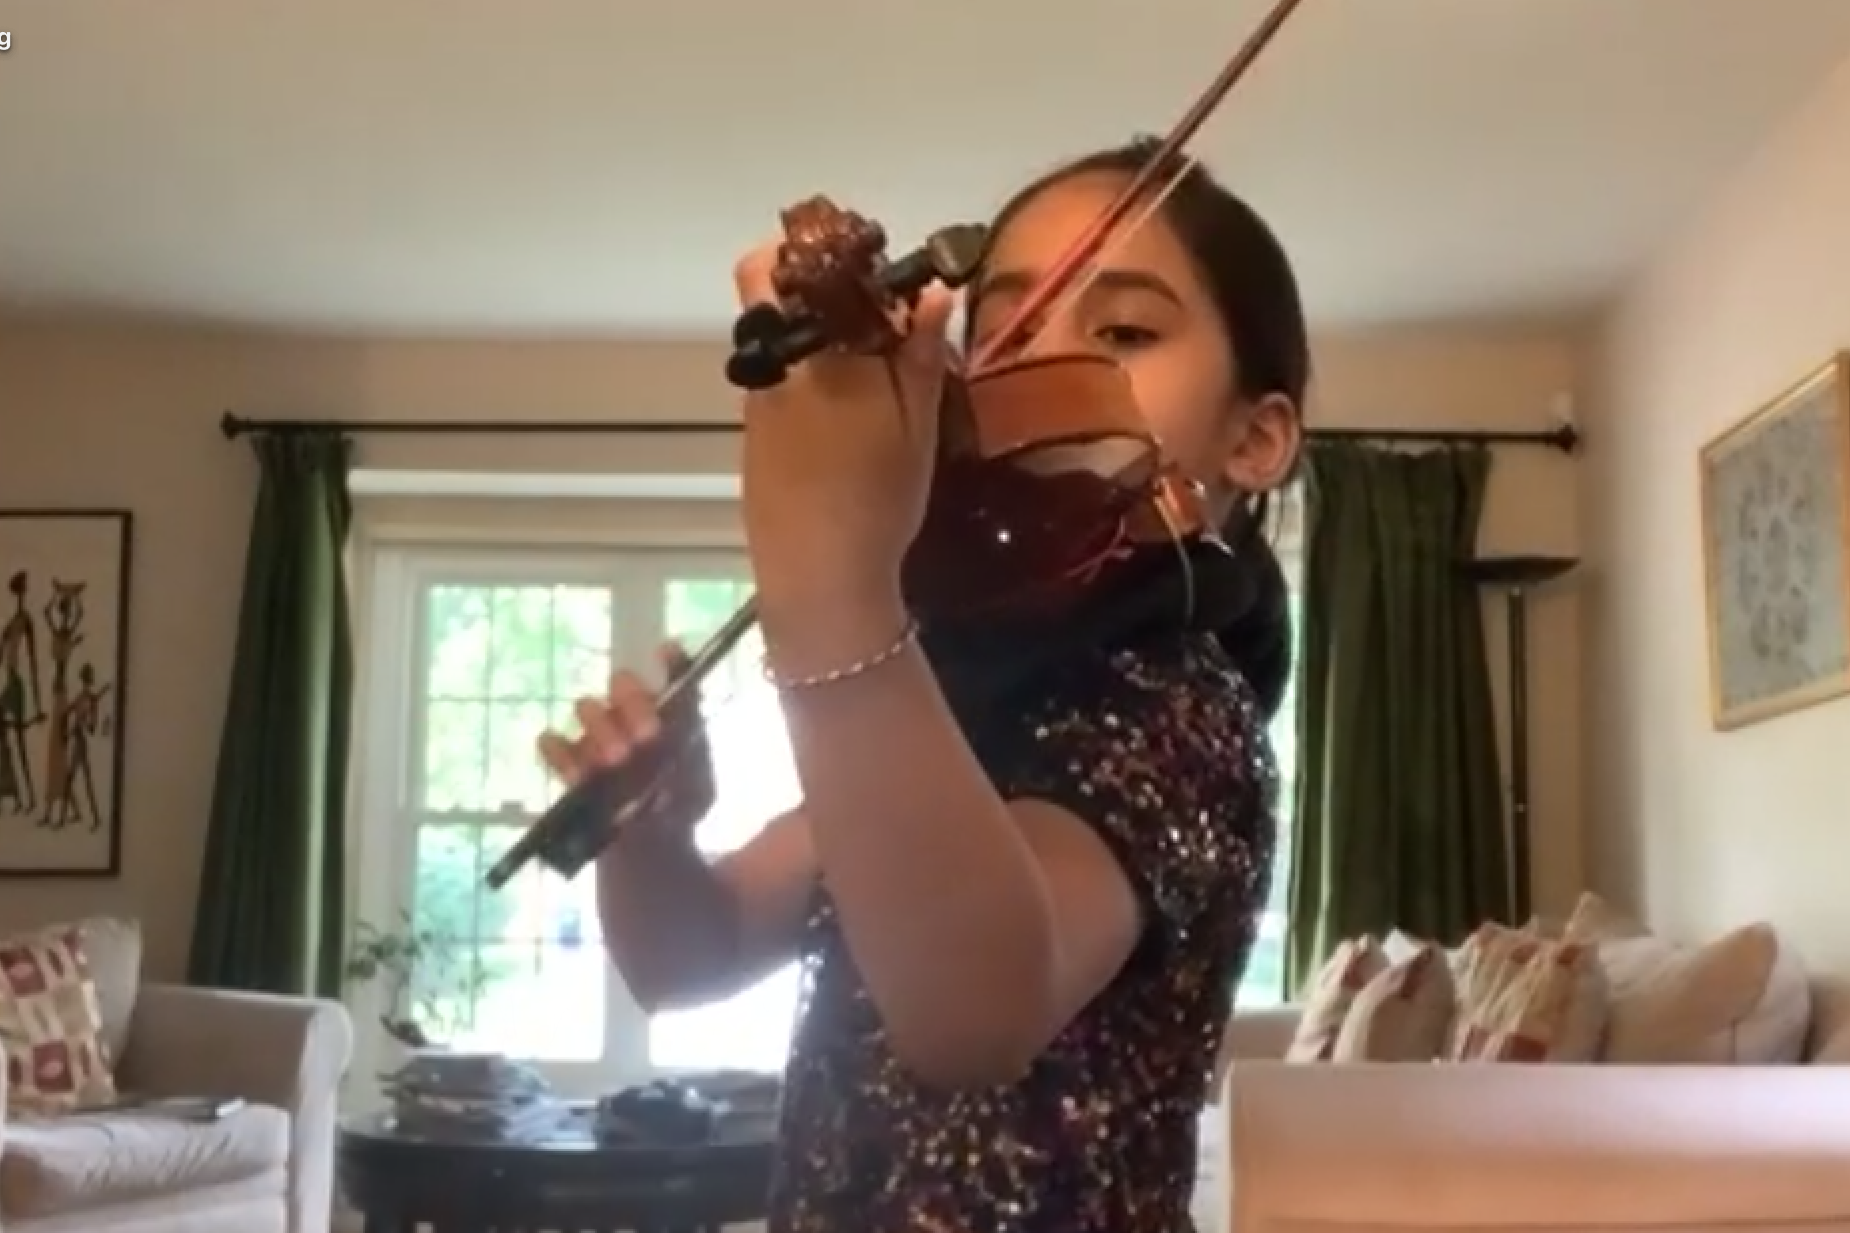 Up Close of Young Girl Playing Violin